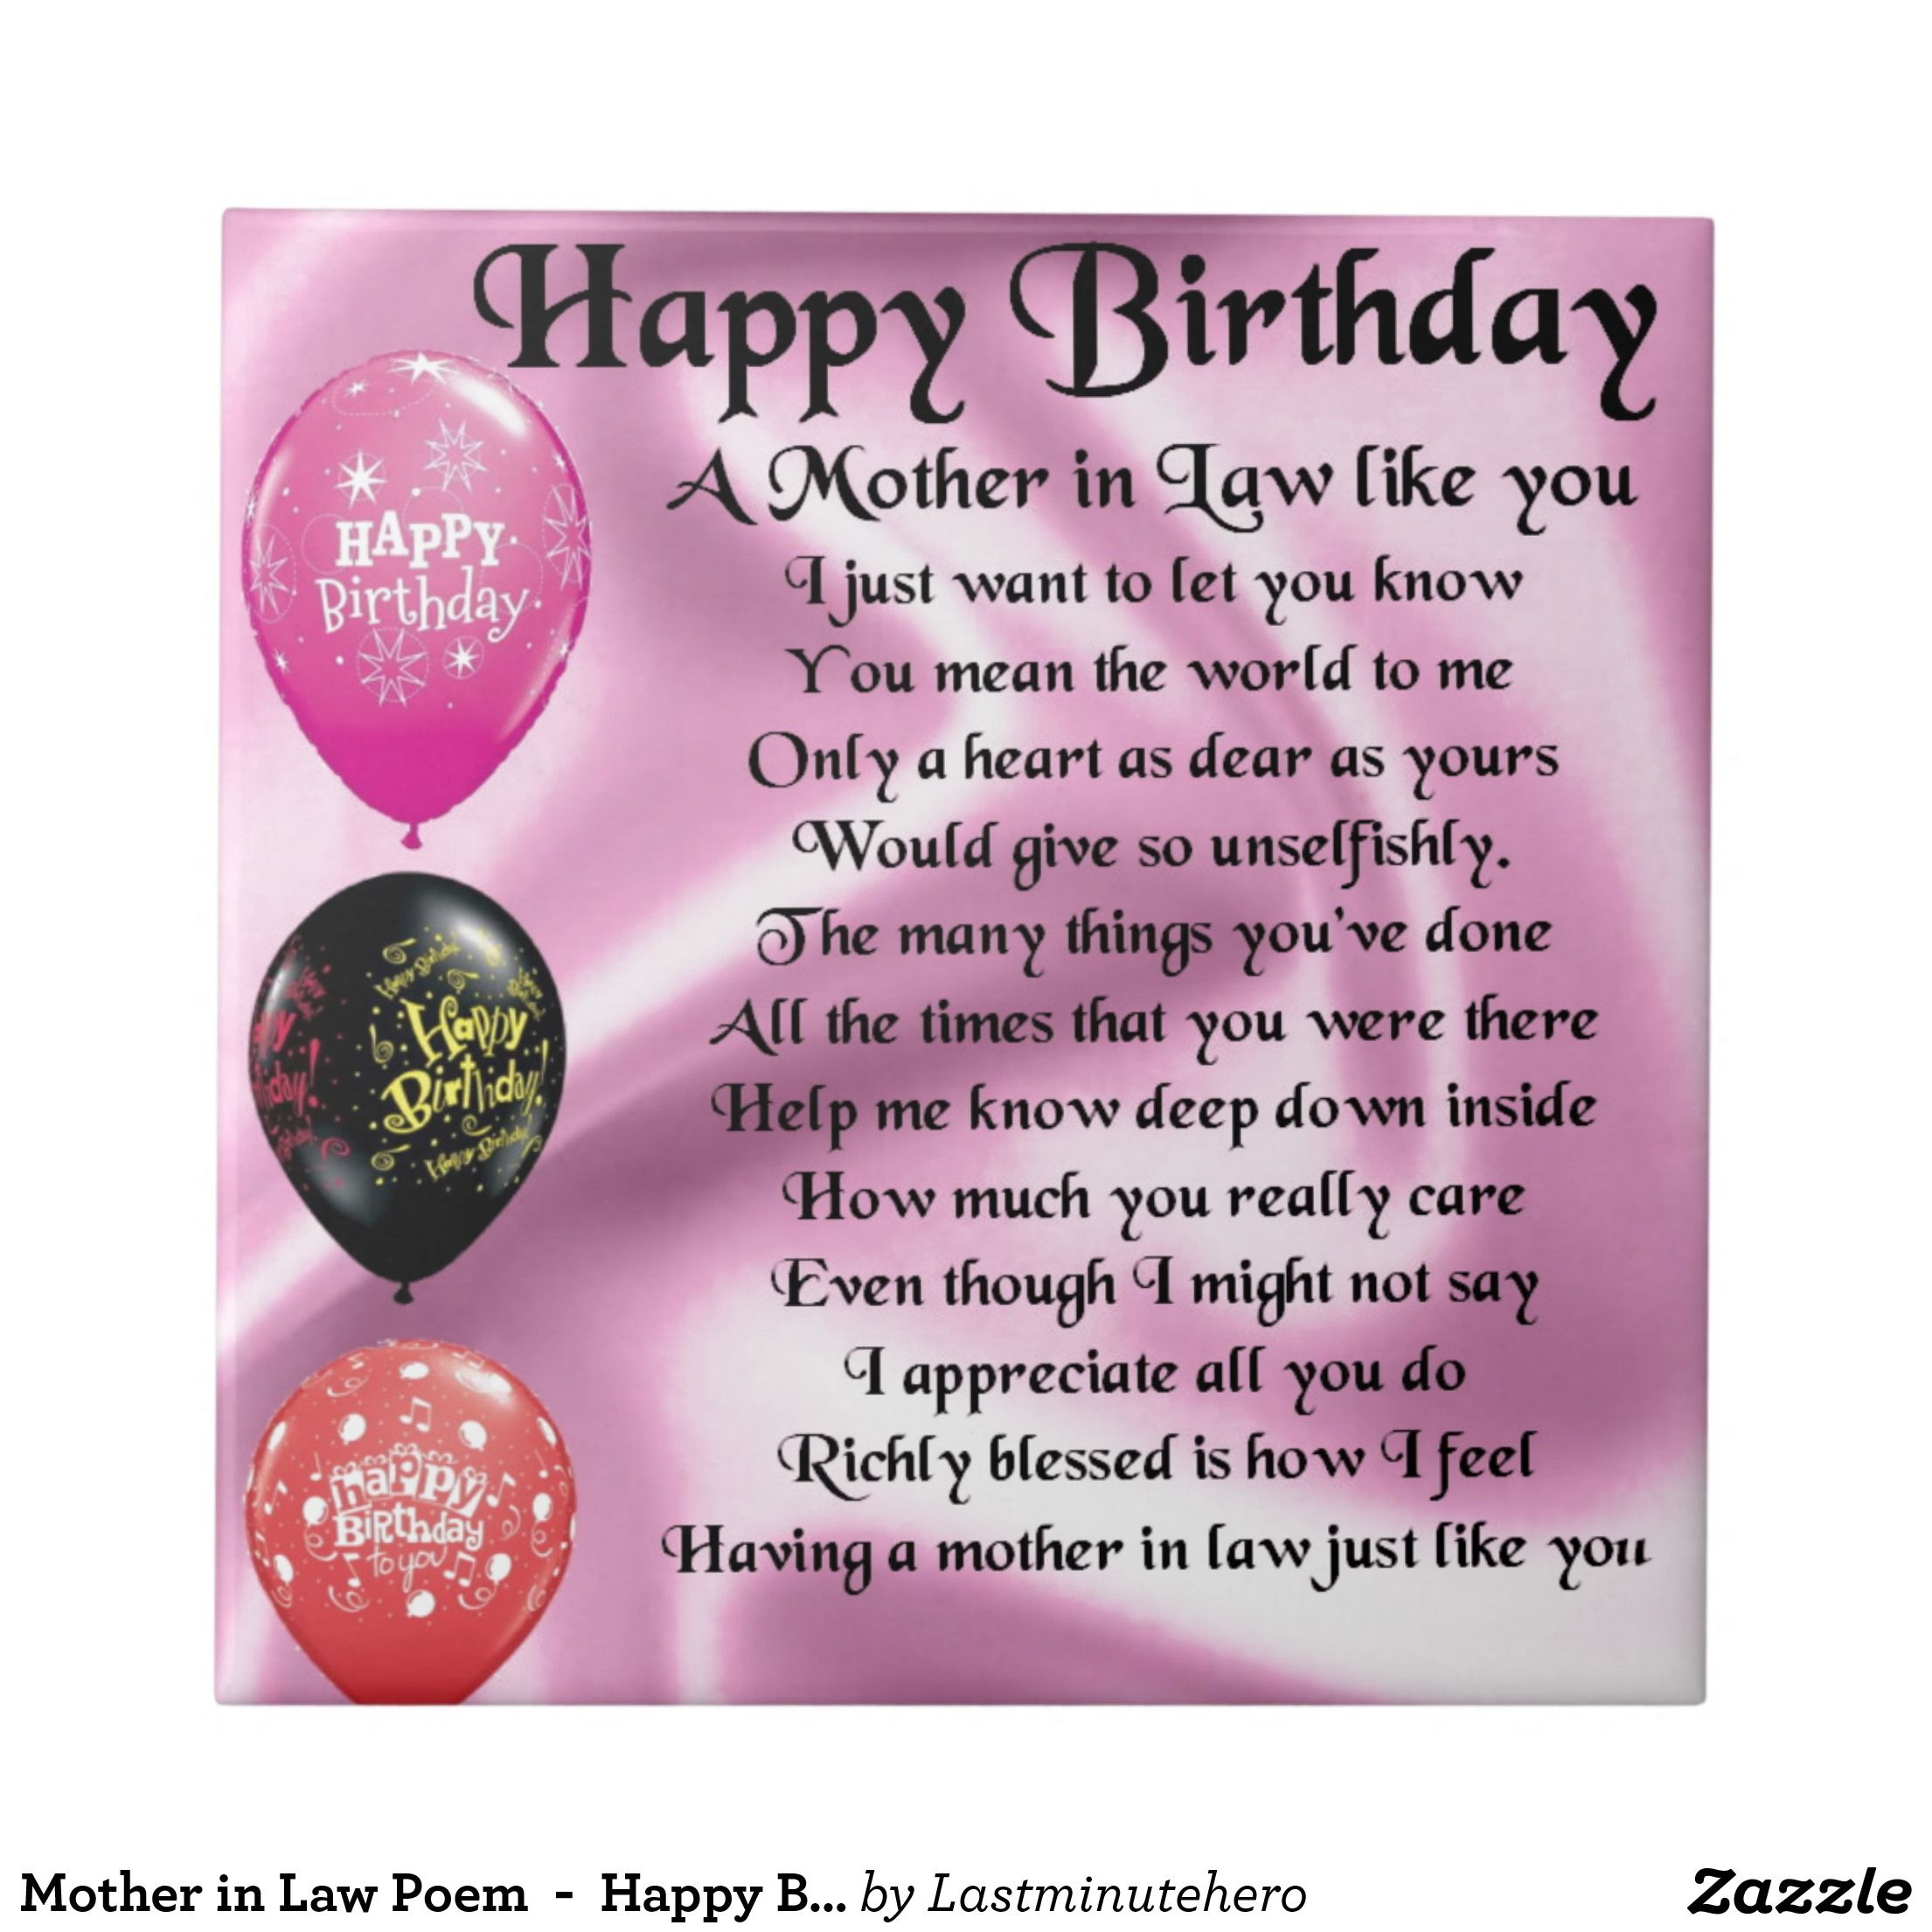 Mother In Law Poem Happy Birthday Tile Meaningful To Me